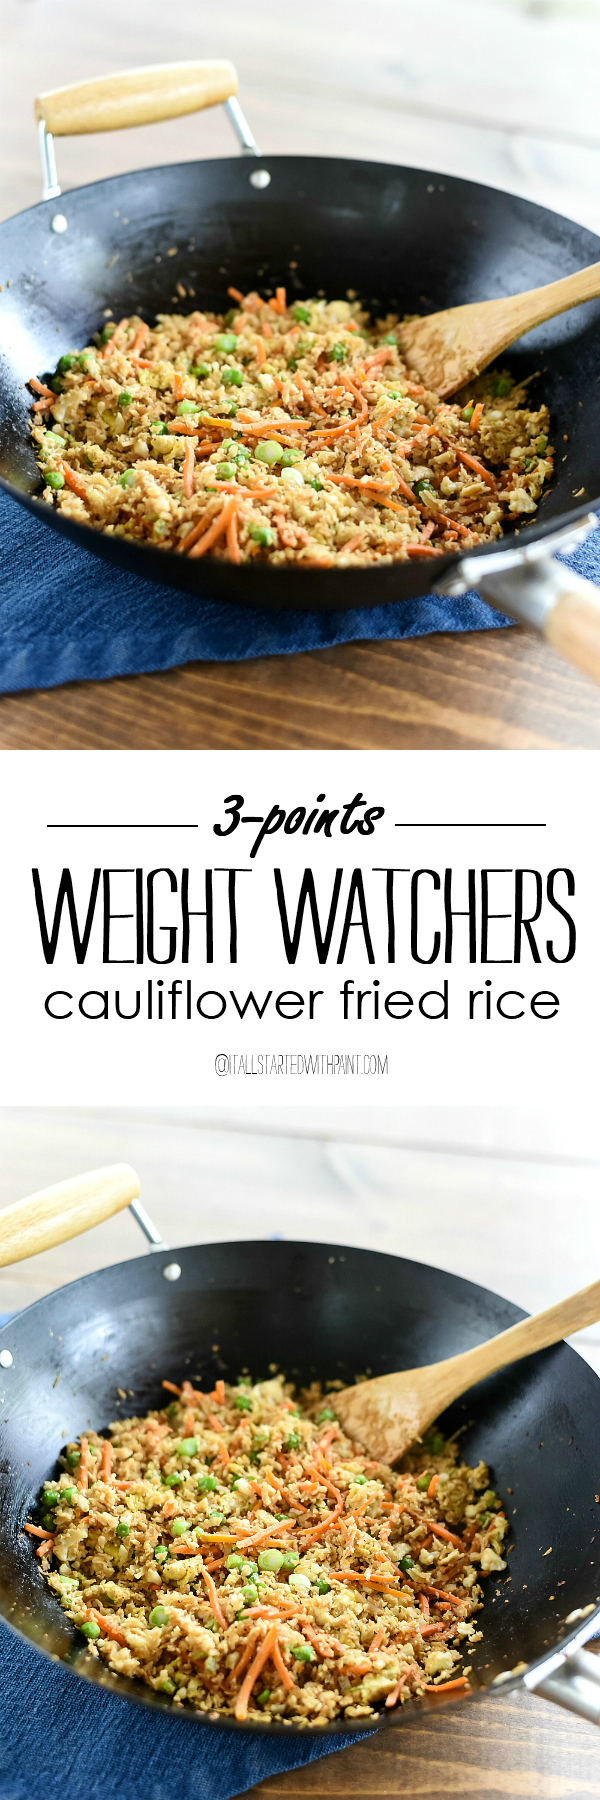 Weight Watchers Cauliflower Fried Rice - Cauliflower Recipe Ideas - Weight Watchers Entree Ideas - Low Point Weight Watchers Recipe Ideas